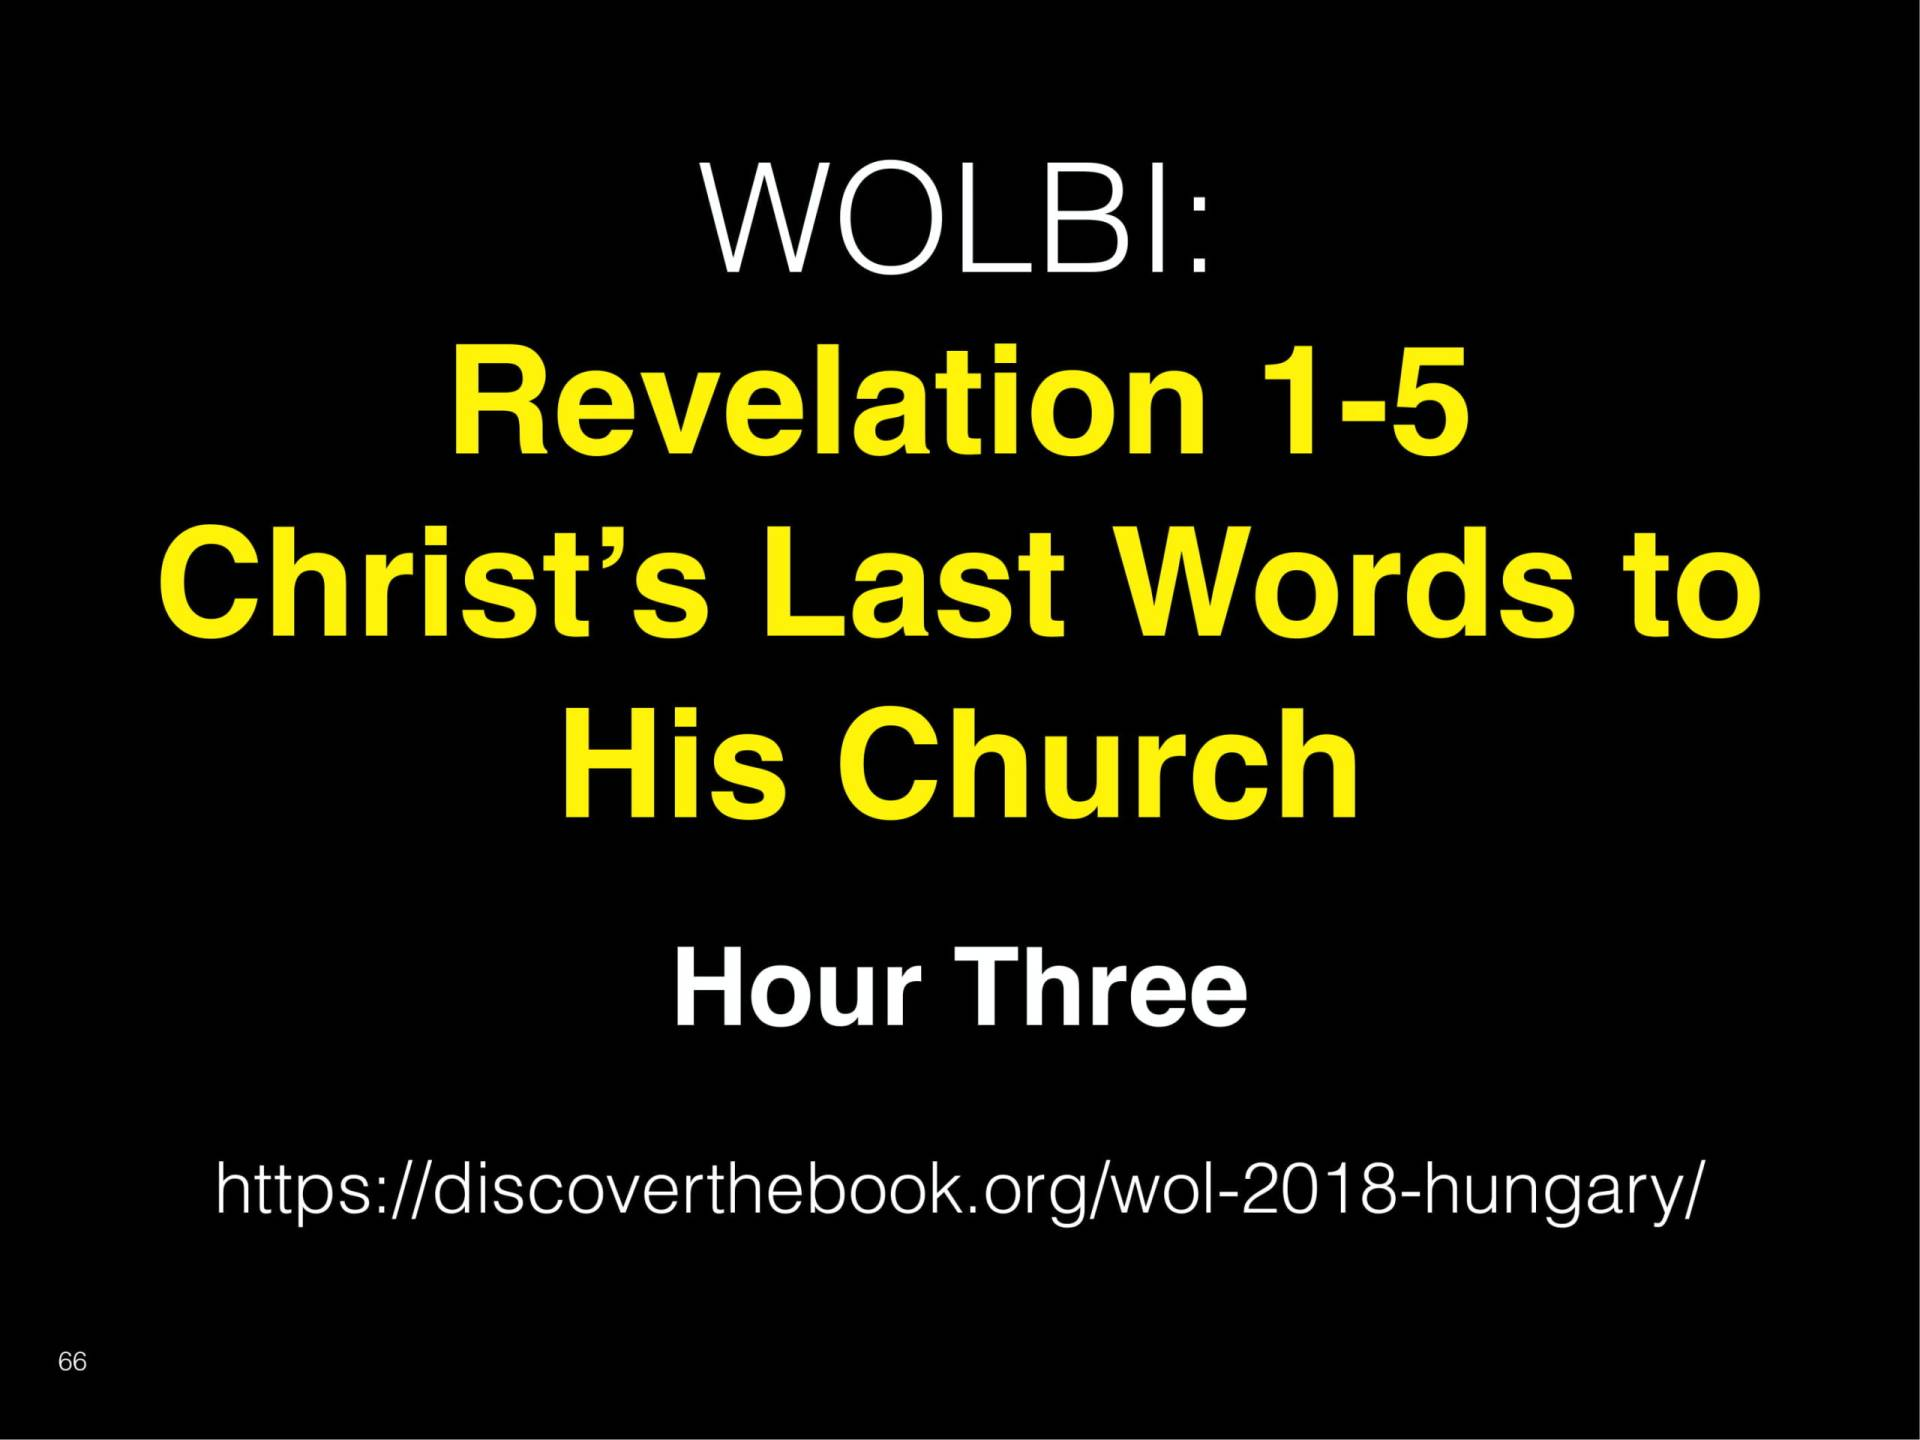 WOL2018 Hungary - 04 - Christ's Last Words To His Church - Christ Sanctifies His Church (21)